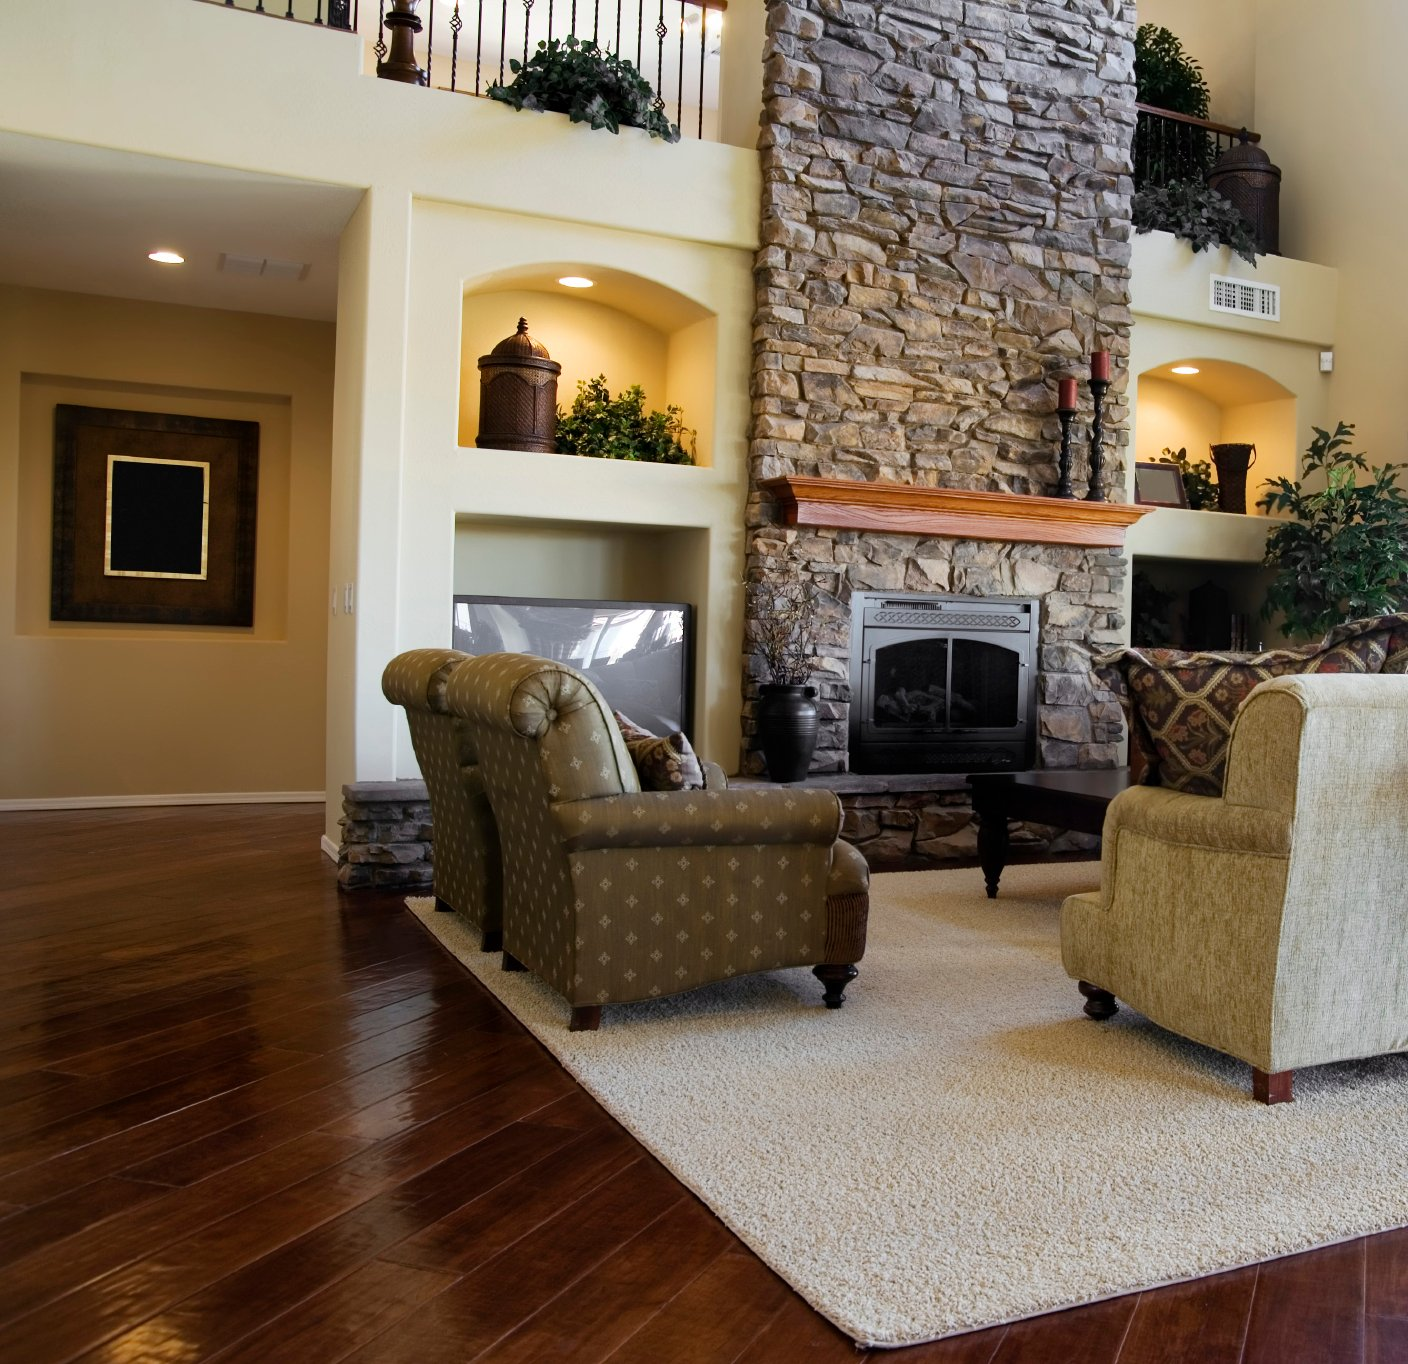 Another luxurious living room dominated by large stone fireplace, this room features dark hardwood flooring contrasting with light toned walls with built-in decorative shelving.